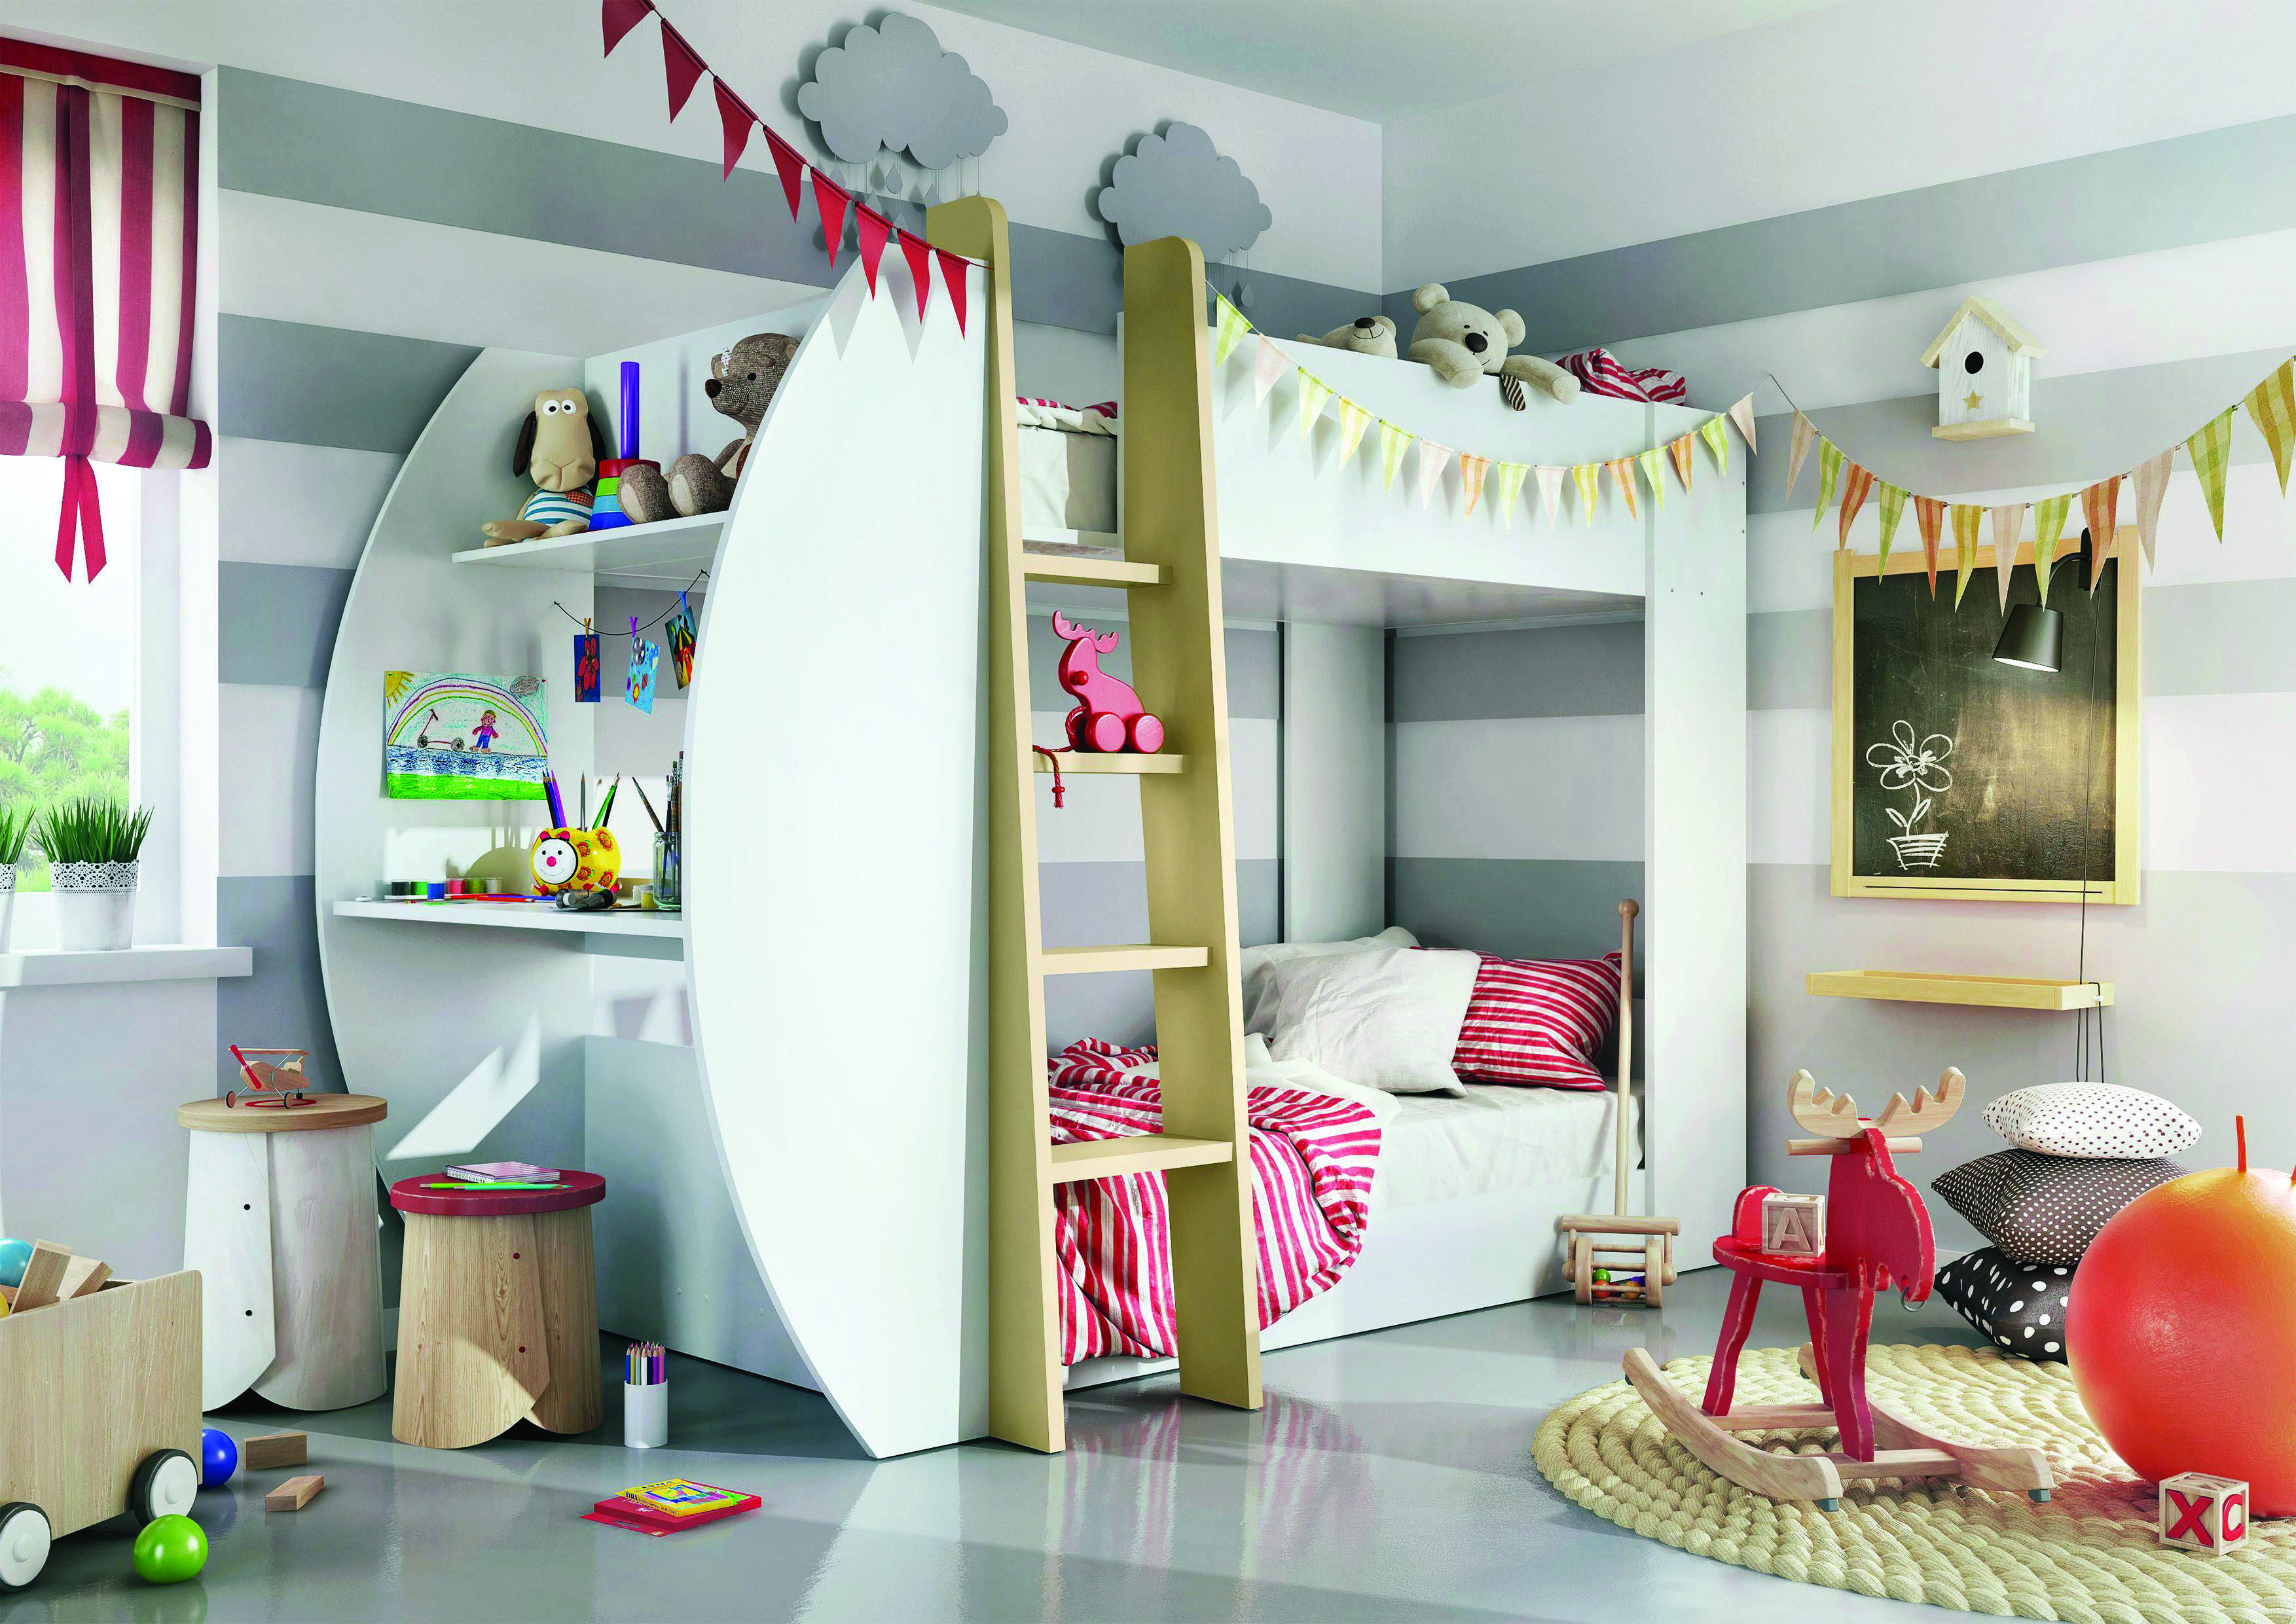 8 loft bedroom ideas for your tiny bed room kids bunk on wonderful ideas of bunk beds for your kids bedroom id=74231